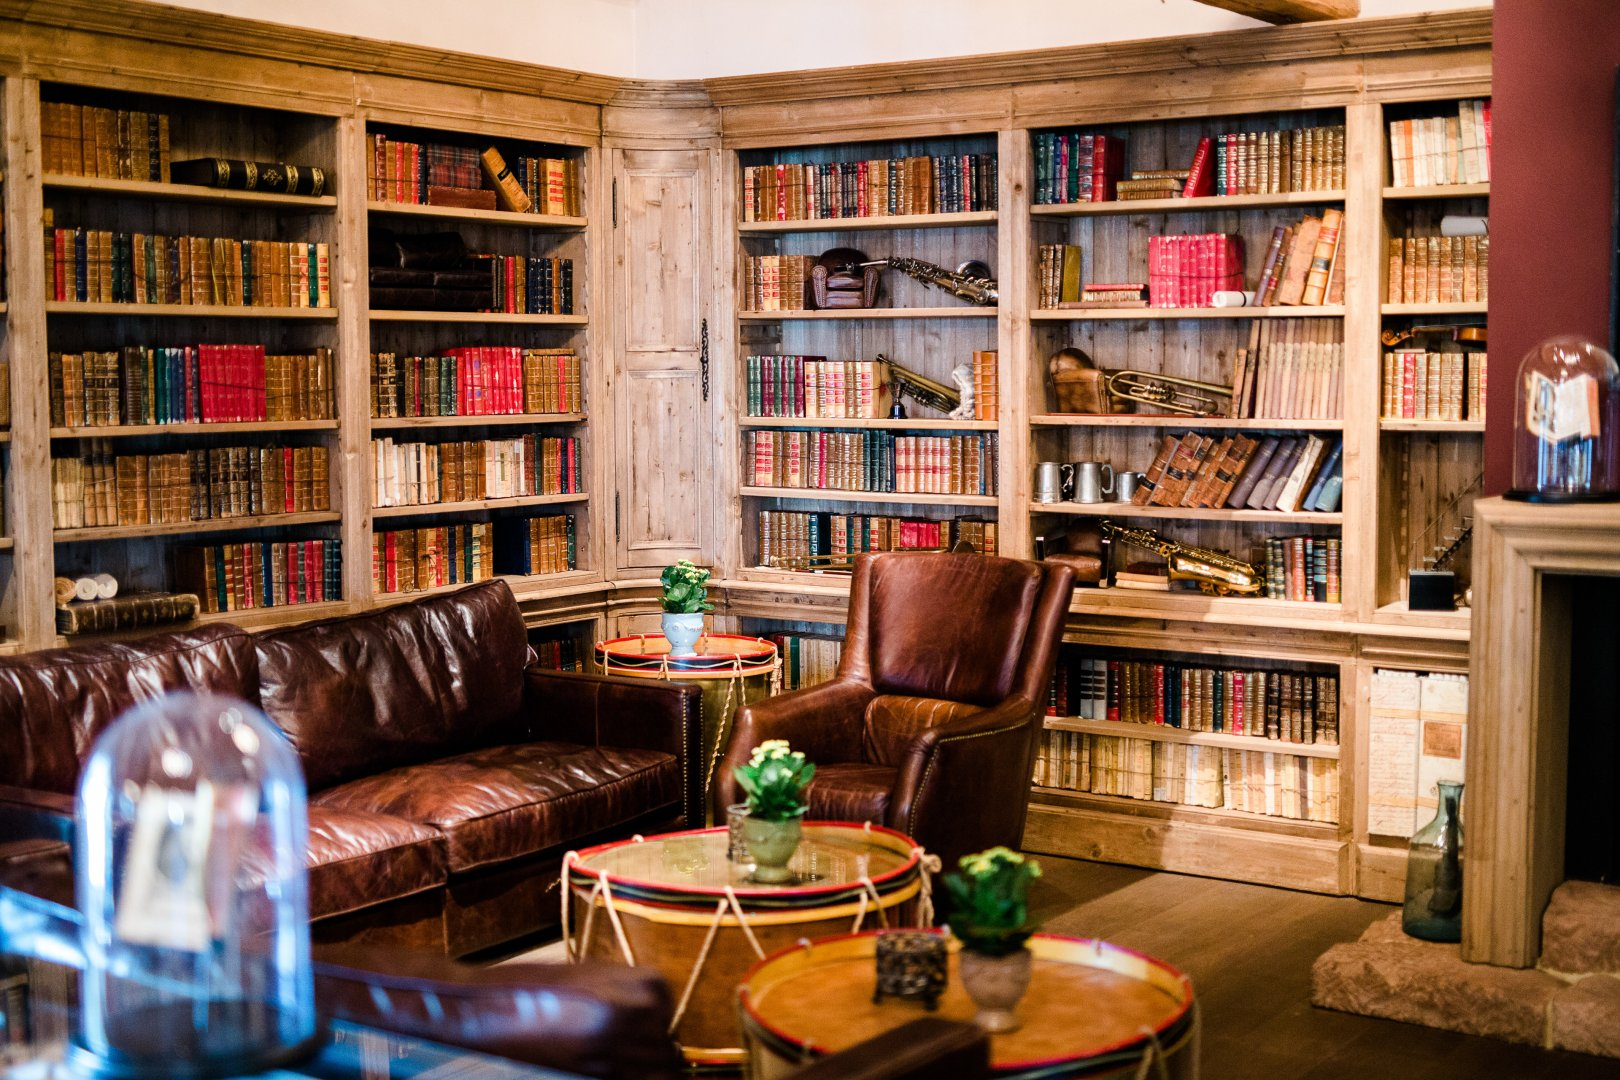 Bookcase Shelving Library Furniture Building Room Shelf Living room Interior design Bookselling Home Public library Book House Architecture Table Den Publication Couch Retail Organization